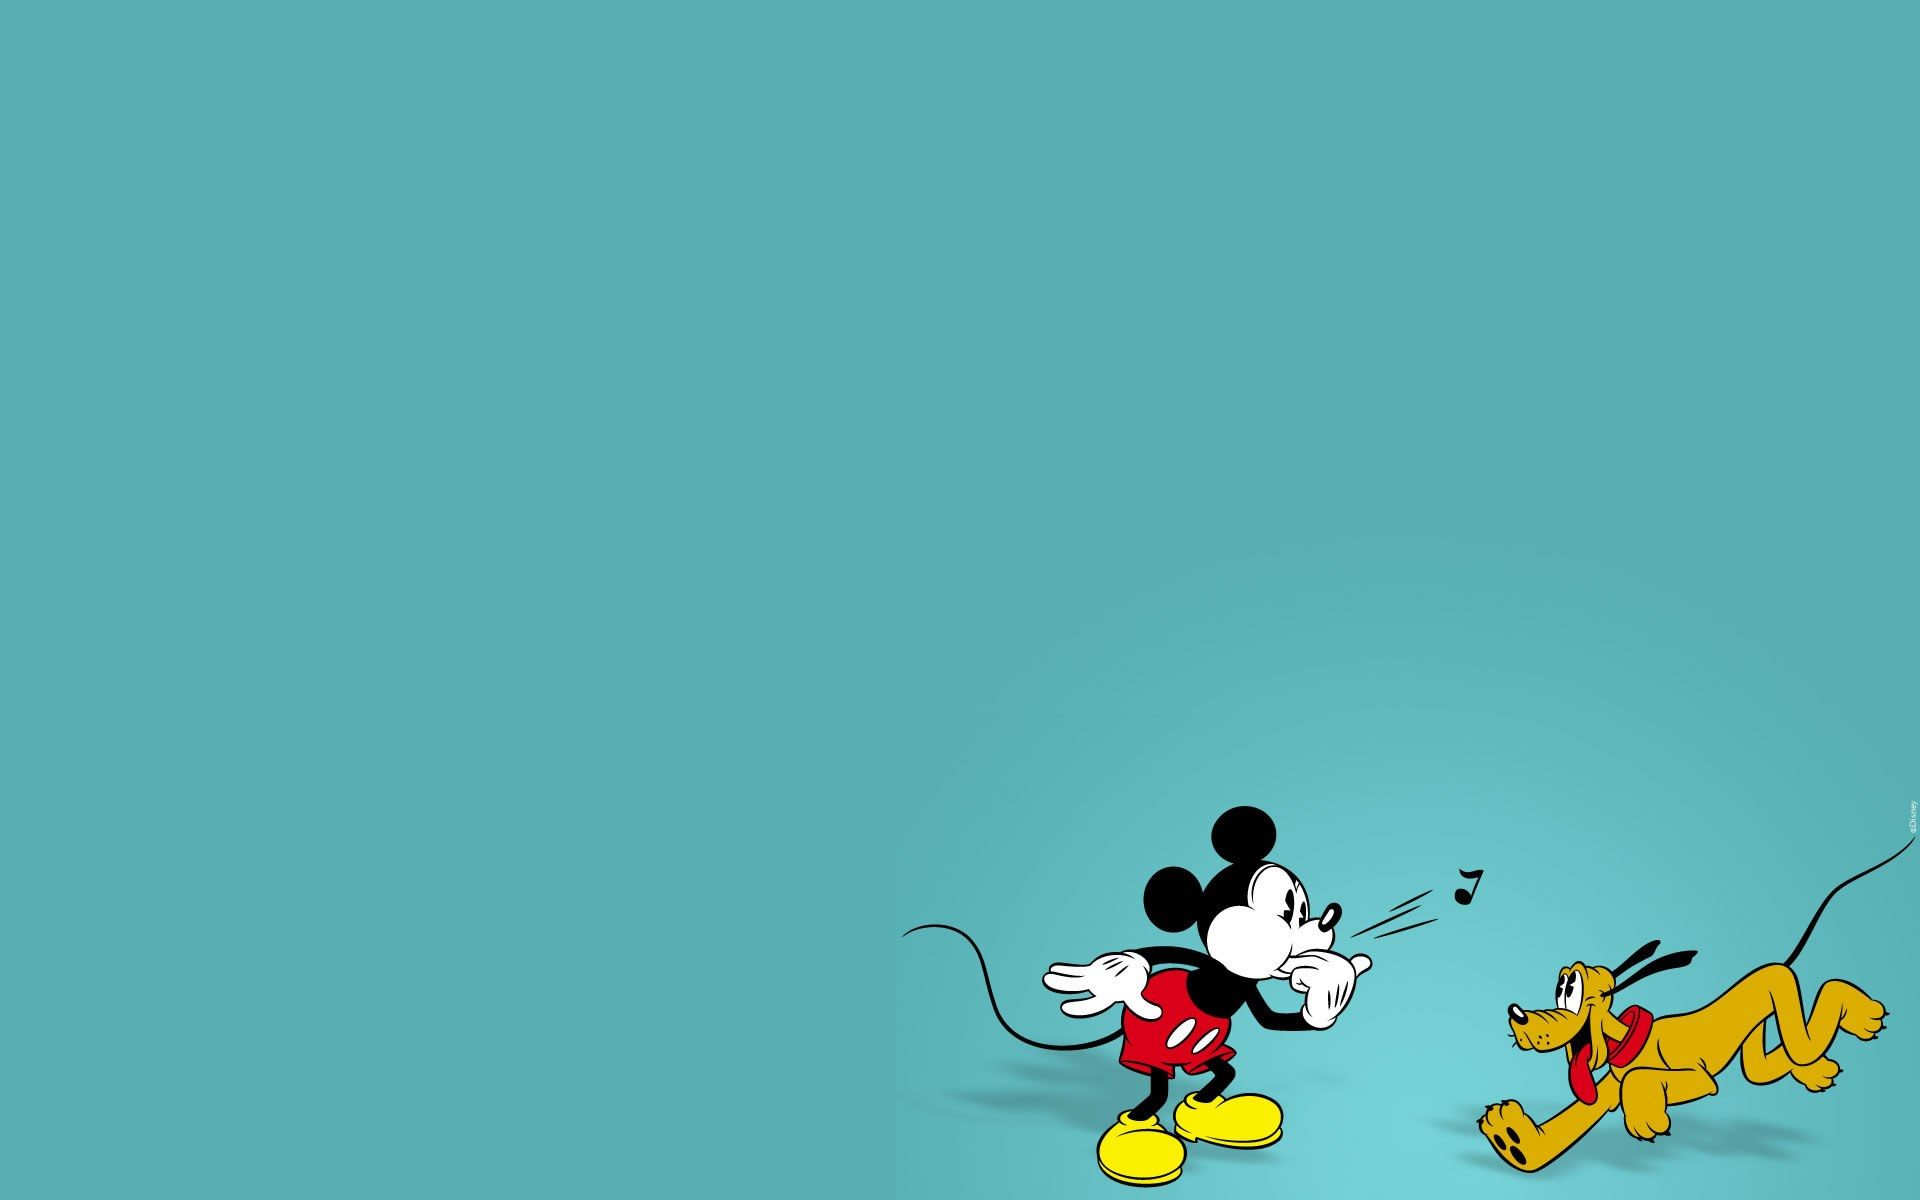 Mickey Mouse Wallpaper PC Desktop 9637